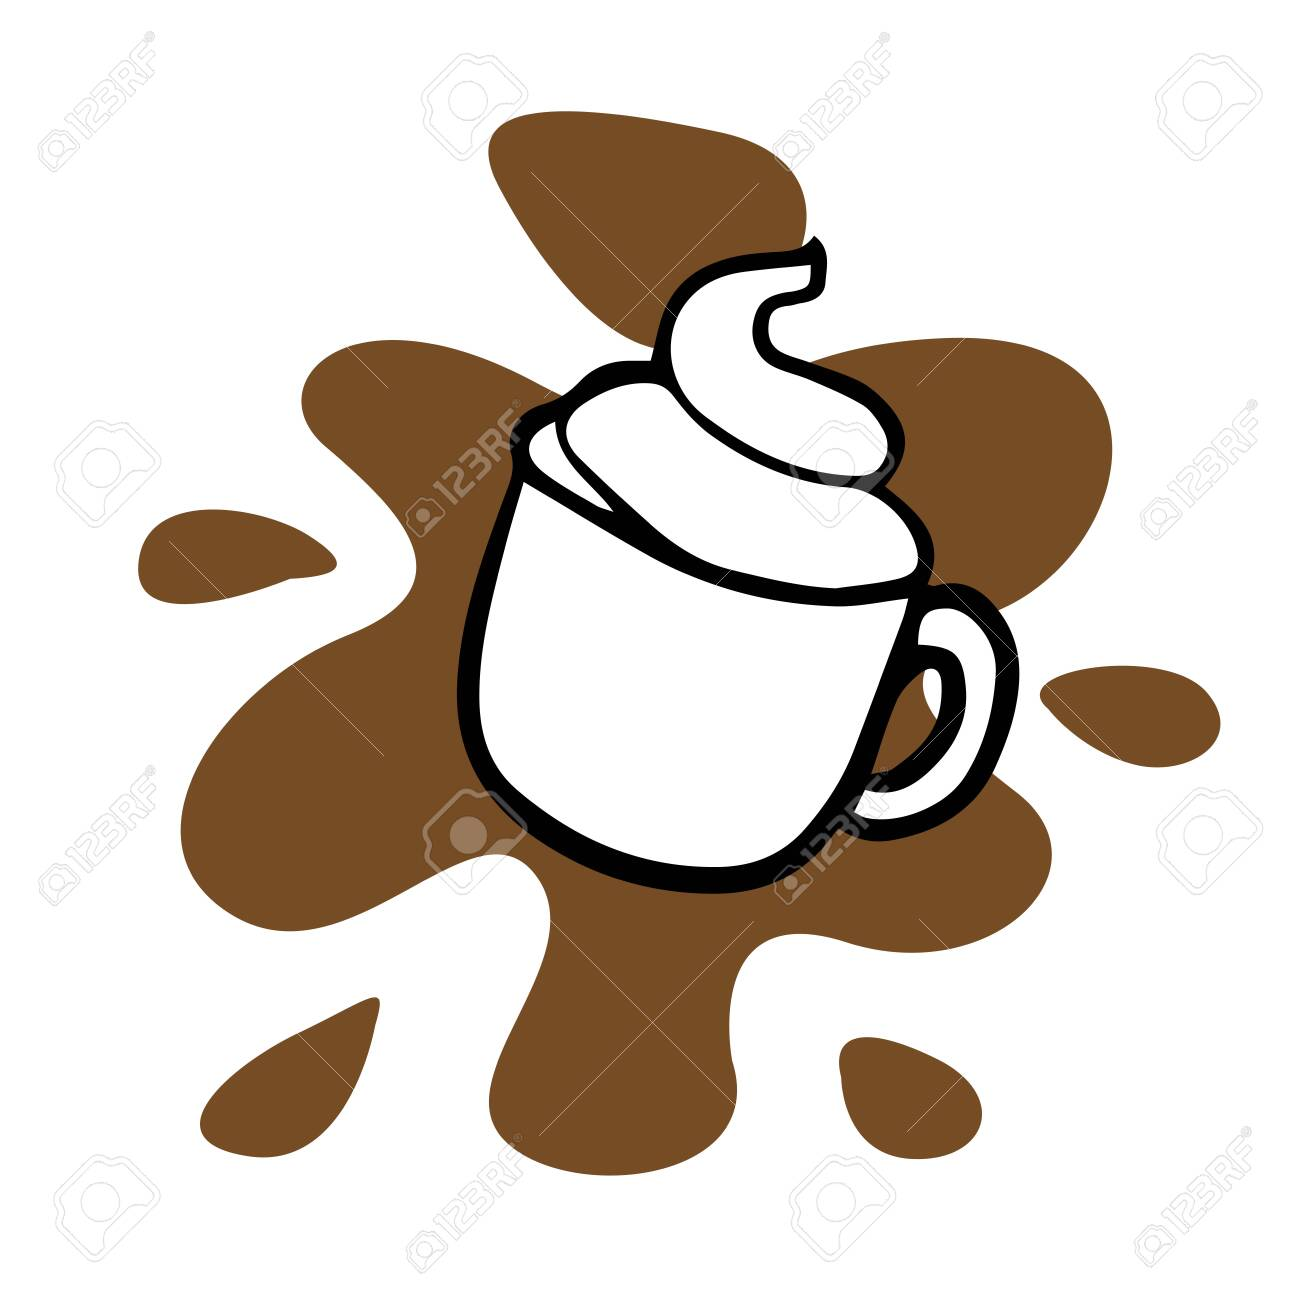 Doodle Sketch Mug With Cappuccino Cartoon Drawing Of Coffee Royalty Free Cliparts Vectors And Stock Illustration Image 130726970